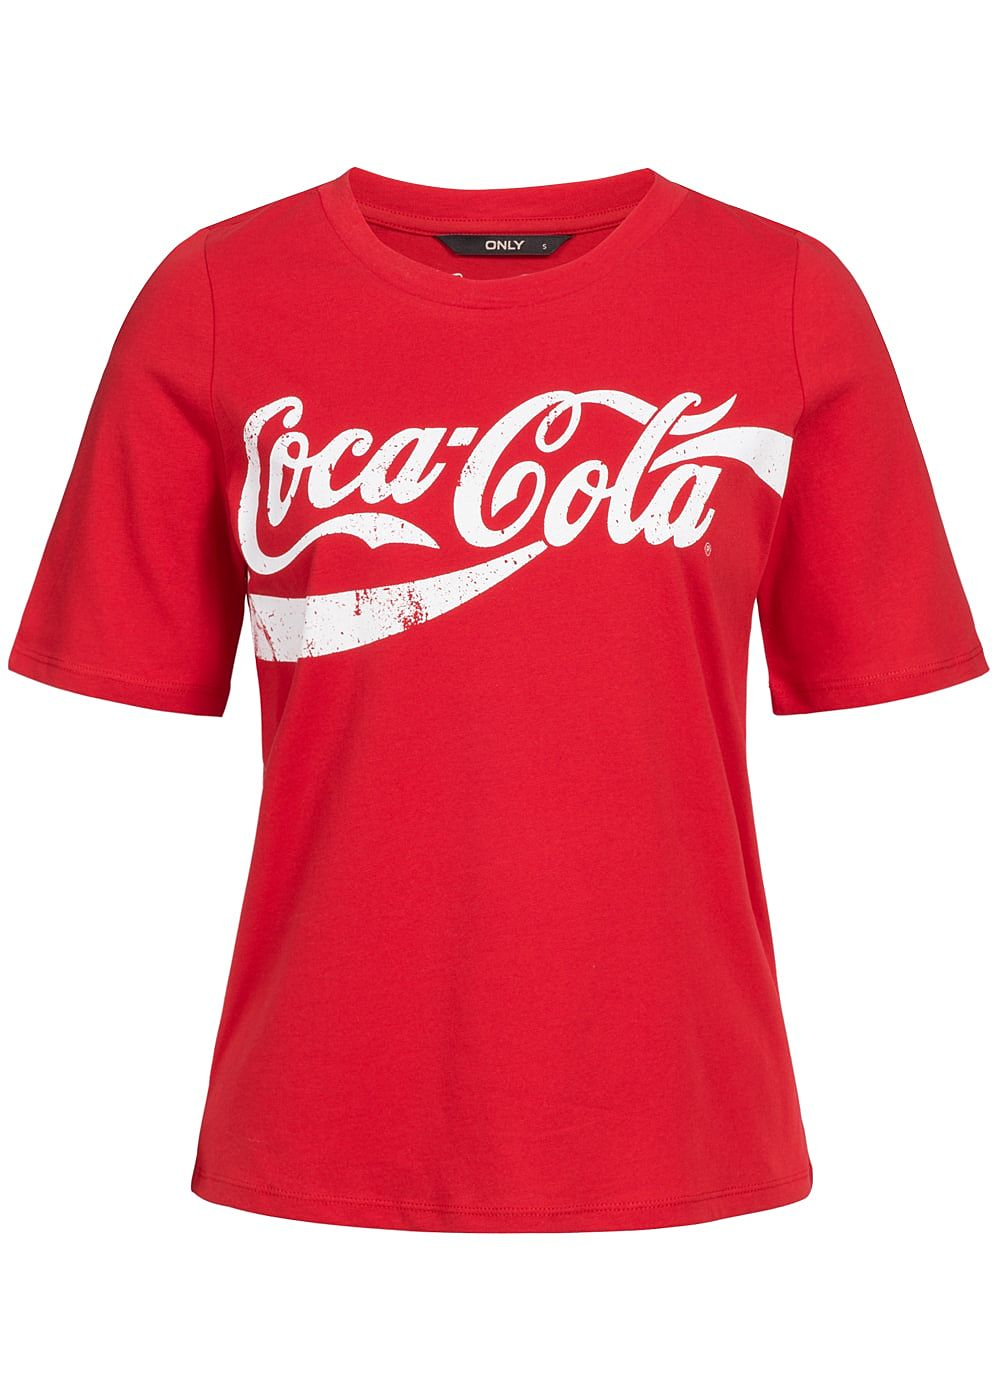 only damen t shirt coca cola print racing rot weiss 77onlineshop. Black Bedroom Furniture Sets. Home Design Ideas